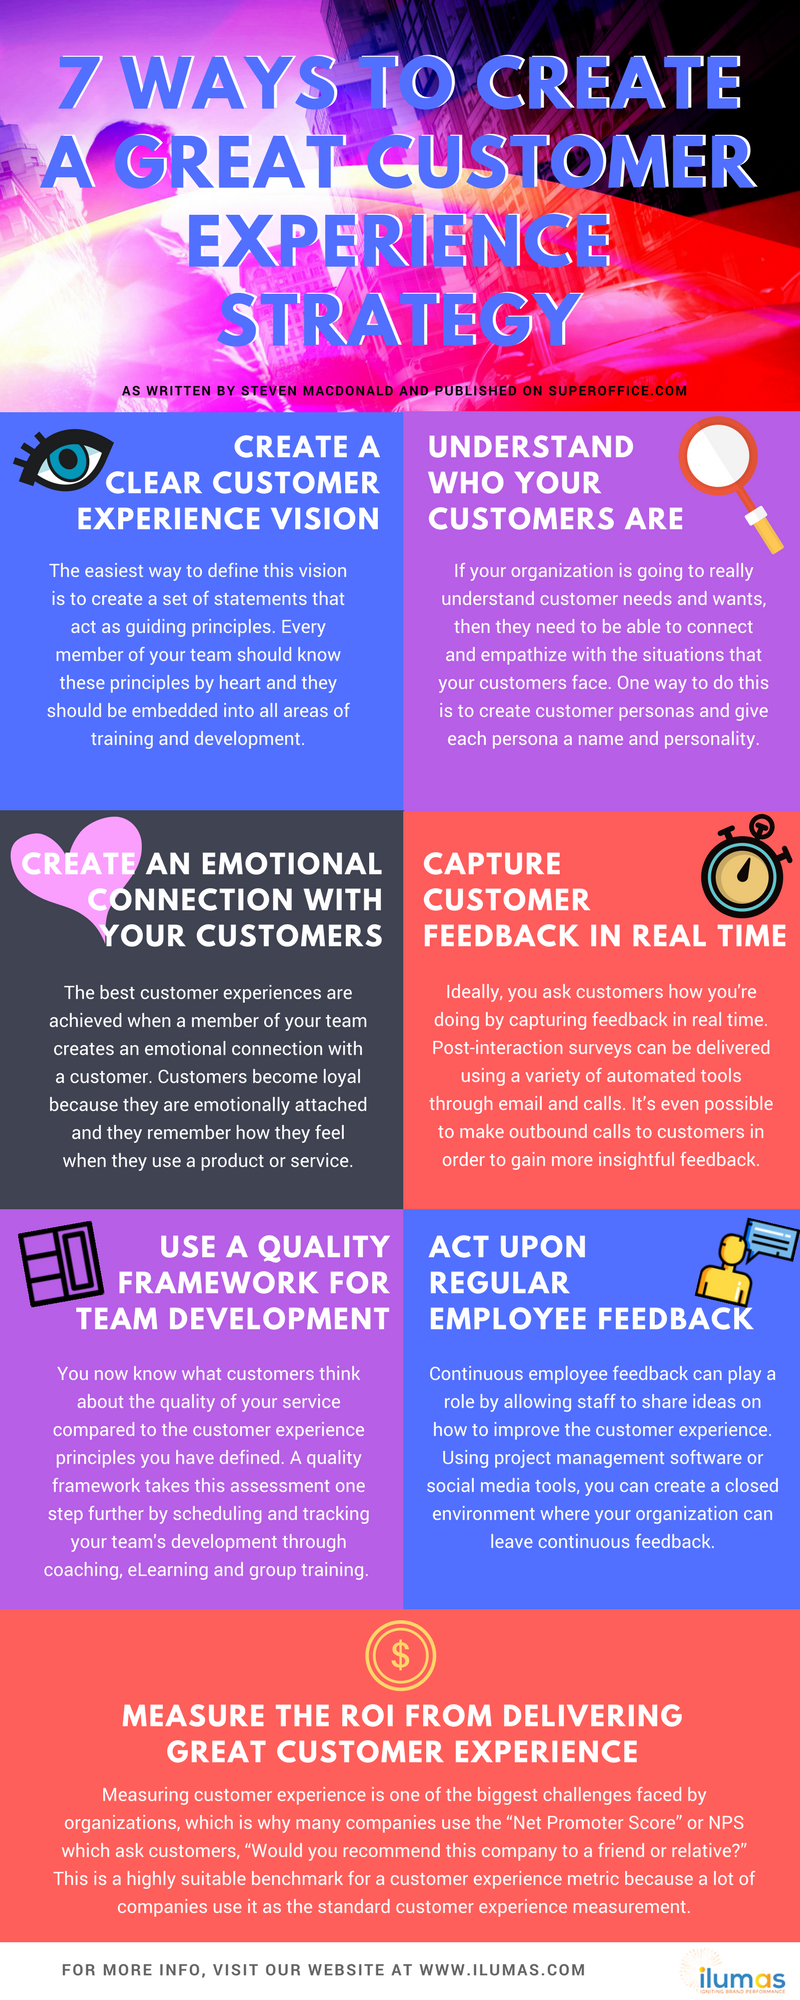 7 Ways to Create Great CX Strategy.png